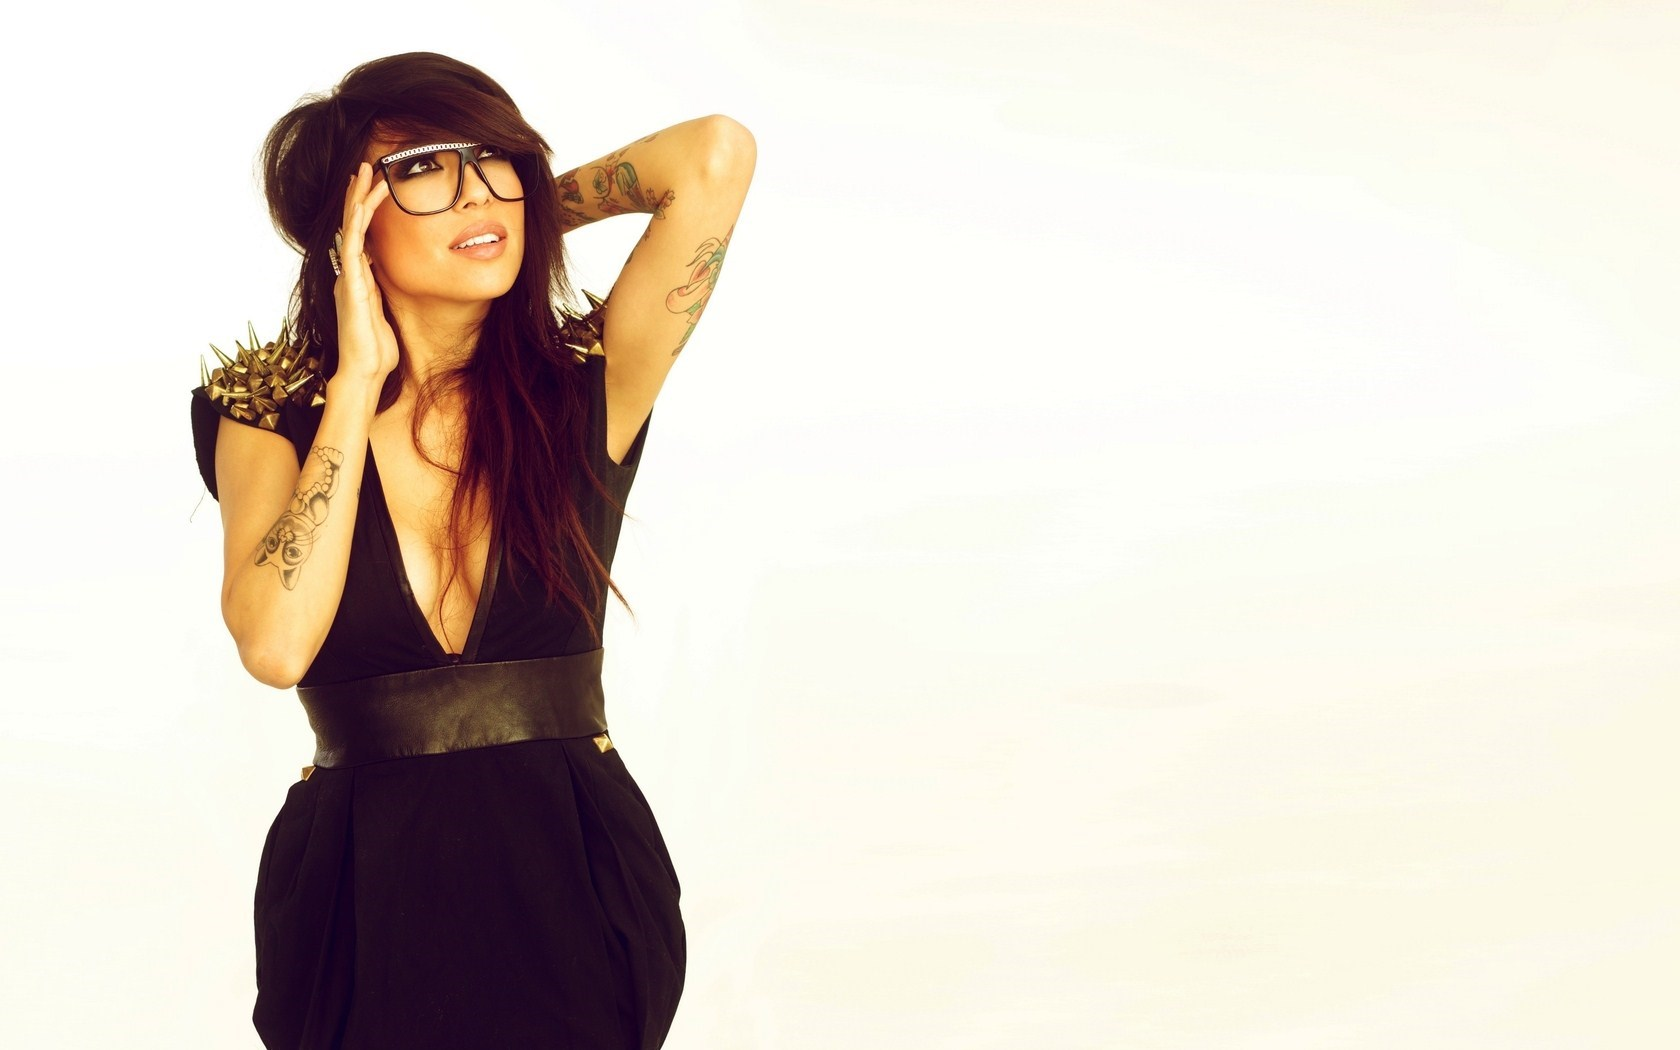 Beautiful Brunette Girl Alie Layus Tattoos Glasses